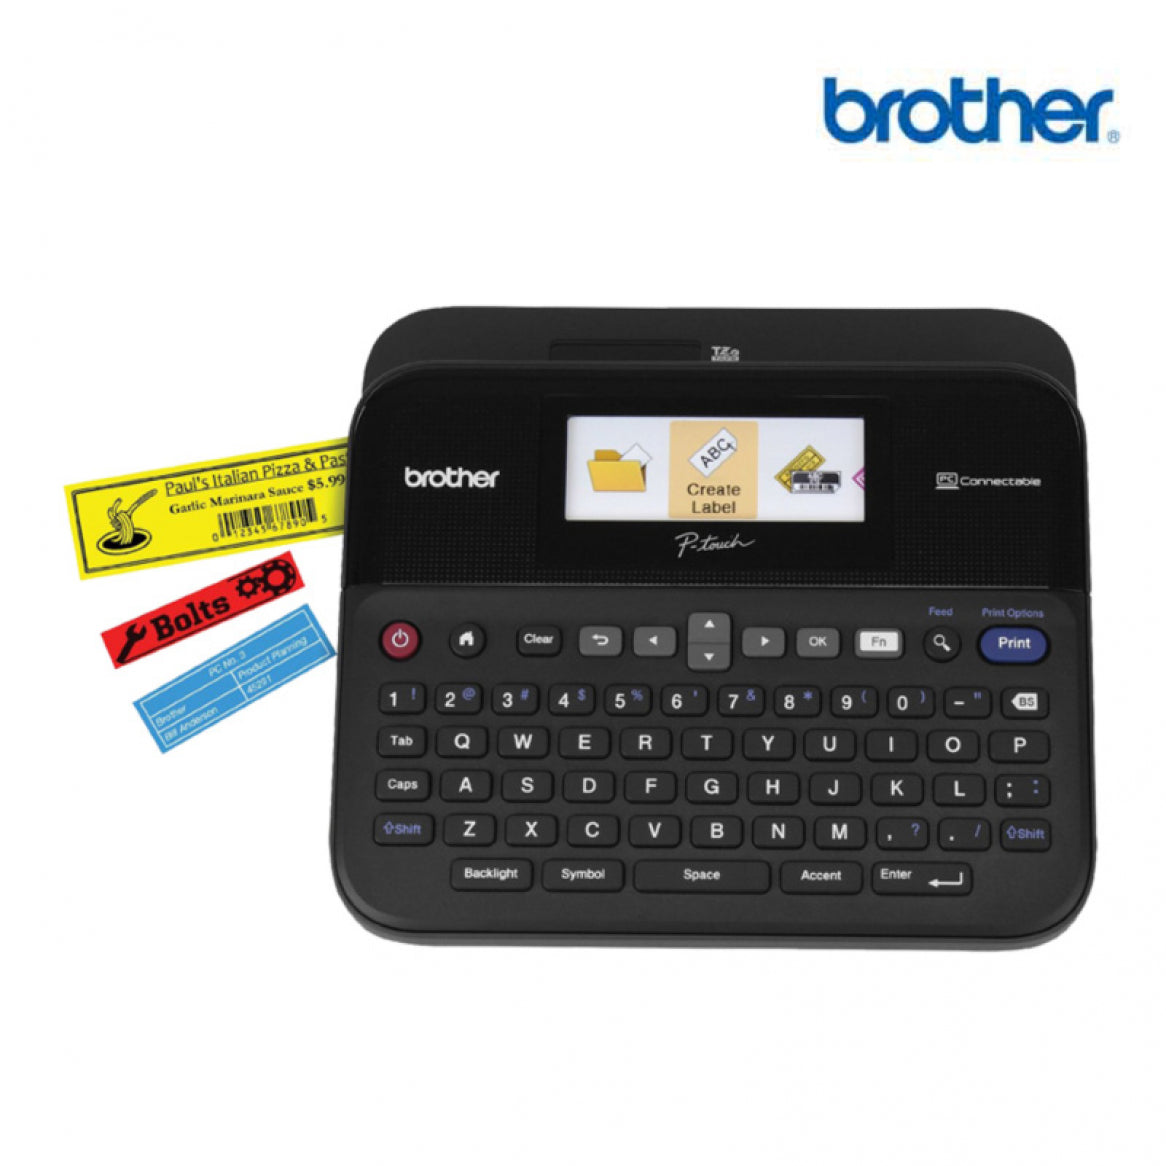 Brother P Touch D600 Label Maker